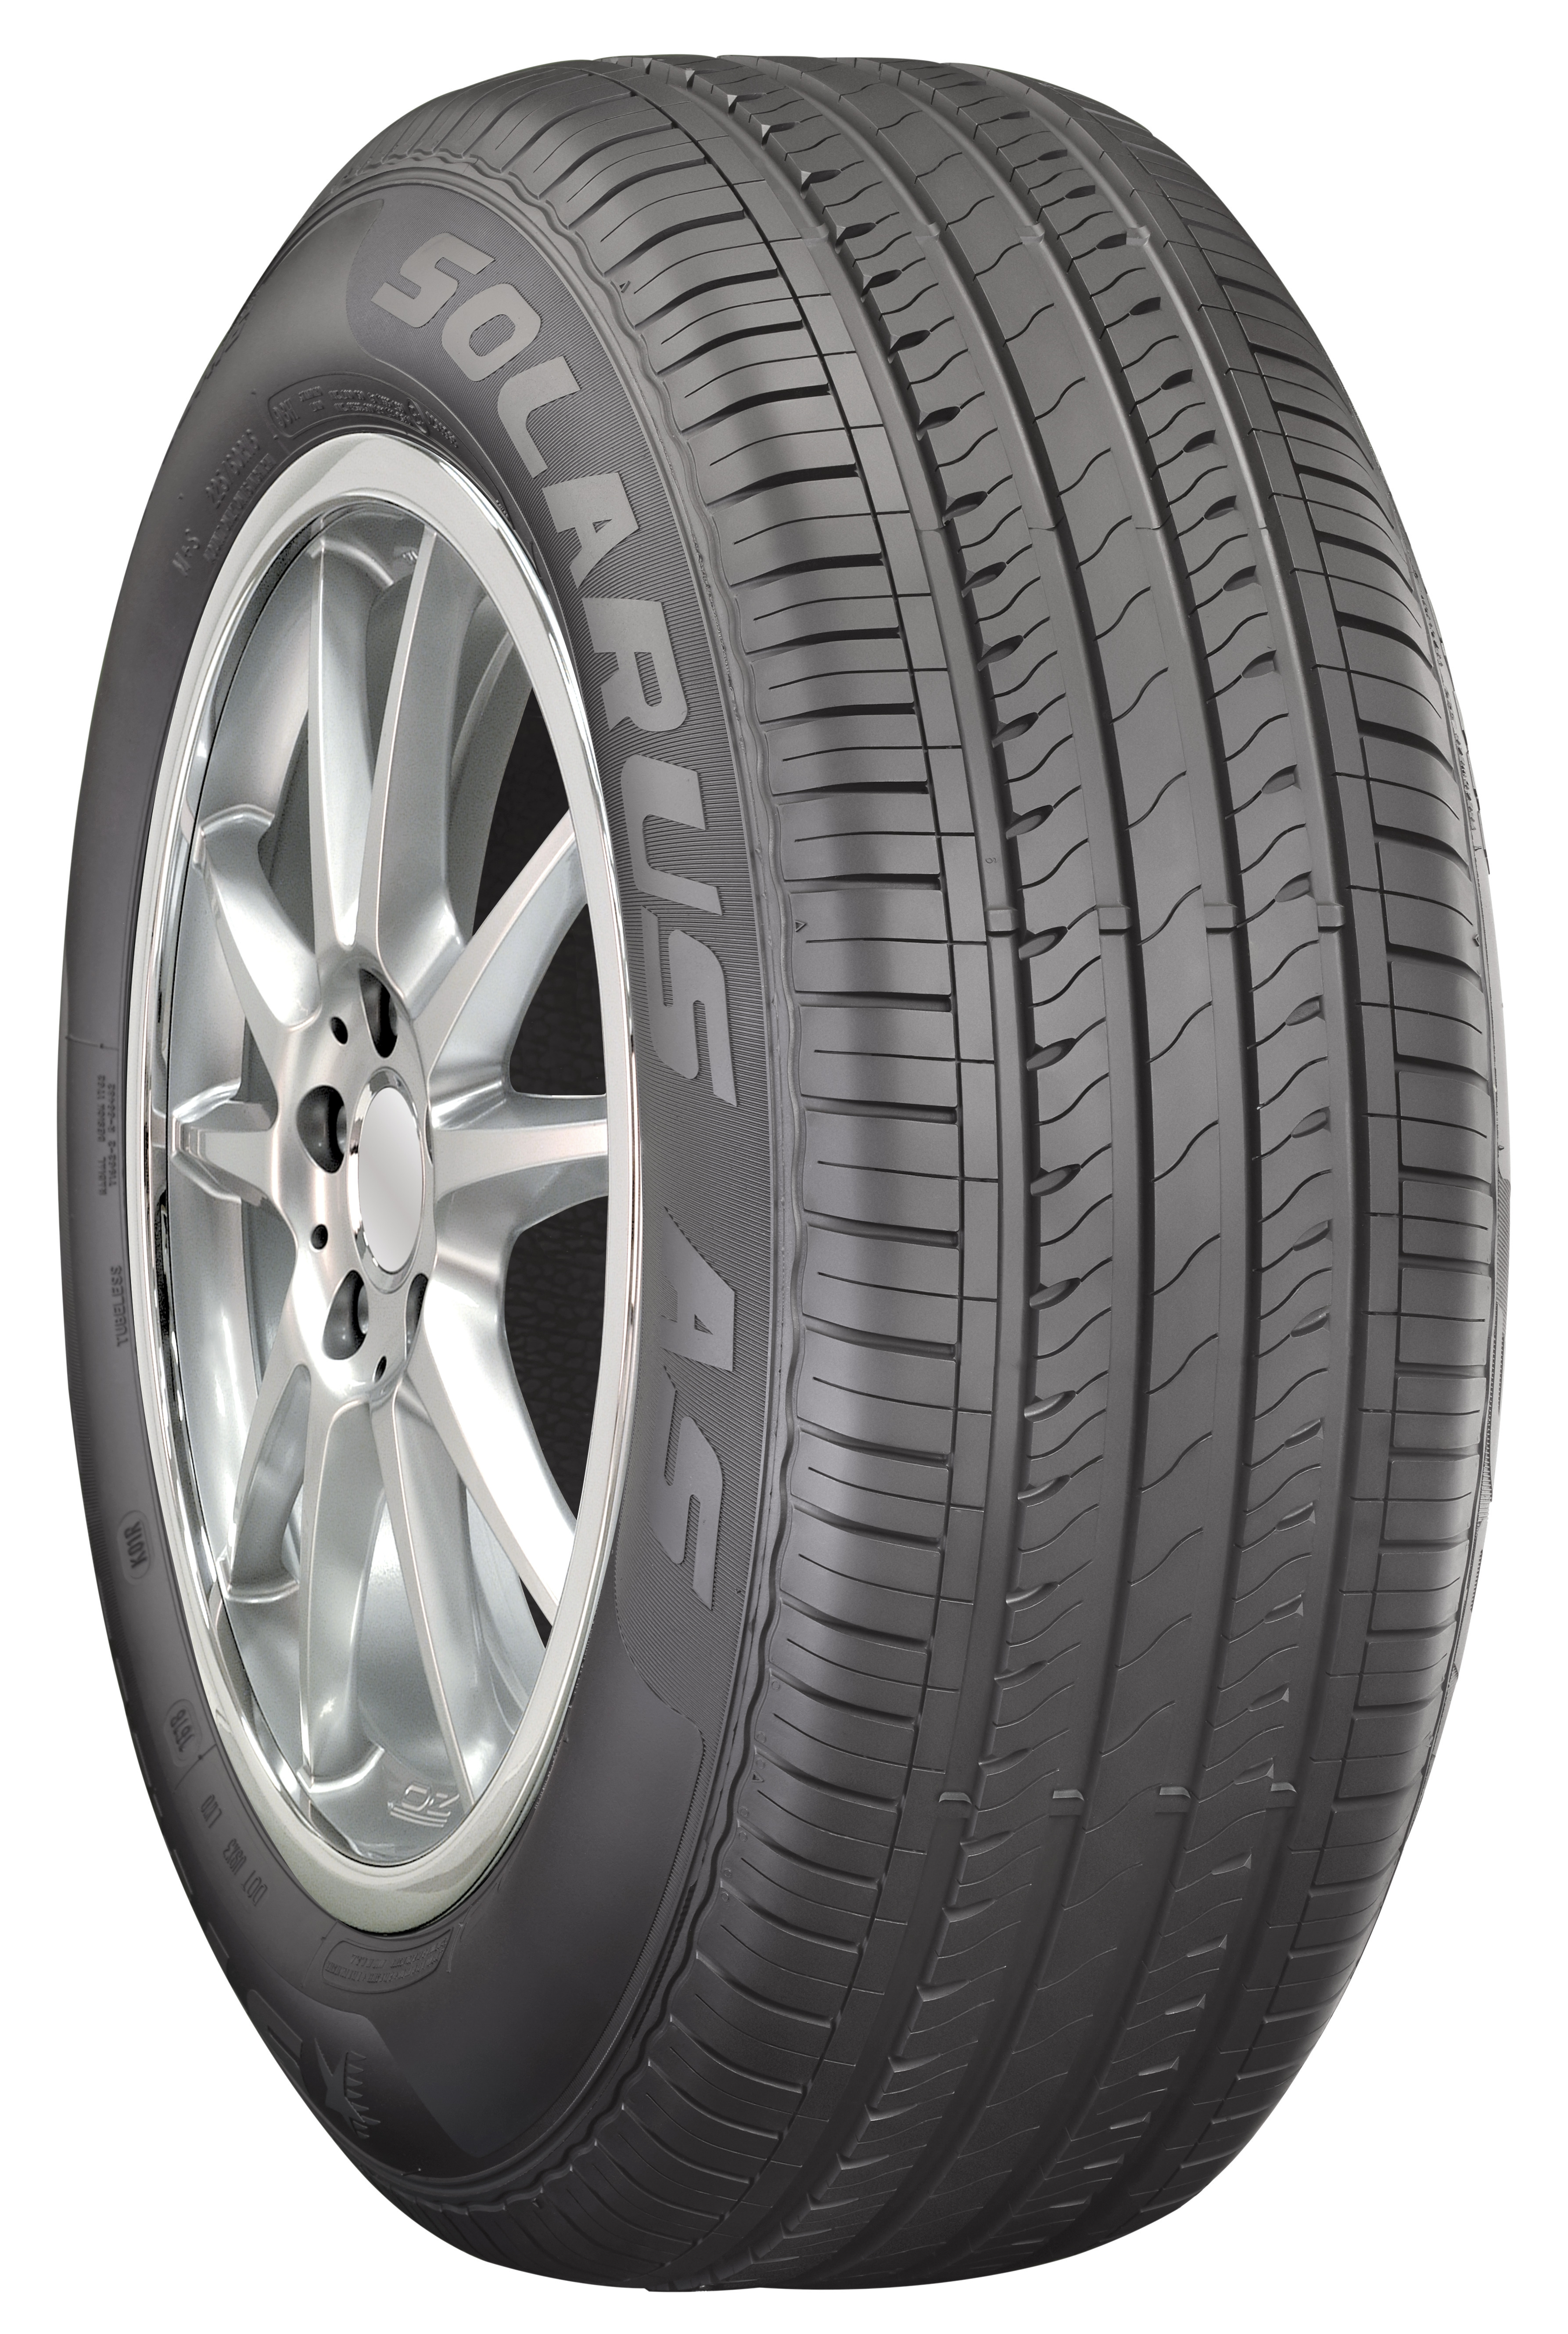 Cooper Tire Launches New Starfire Solarus AS™ | Business Wire